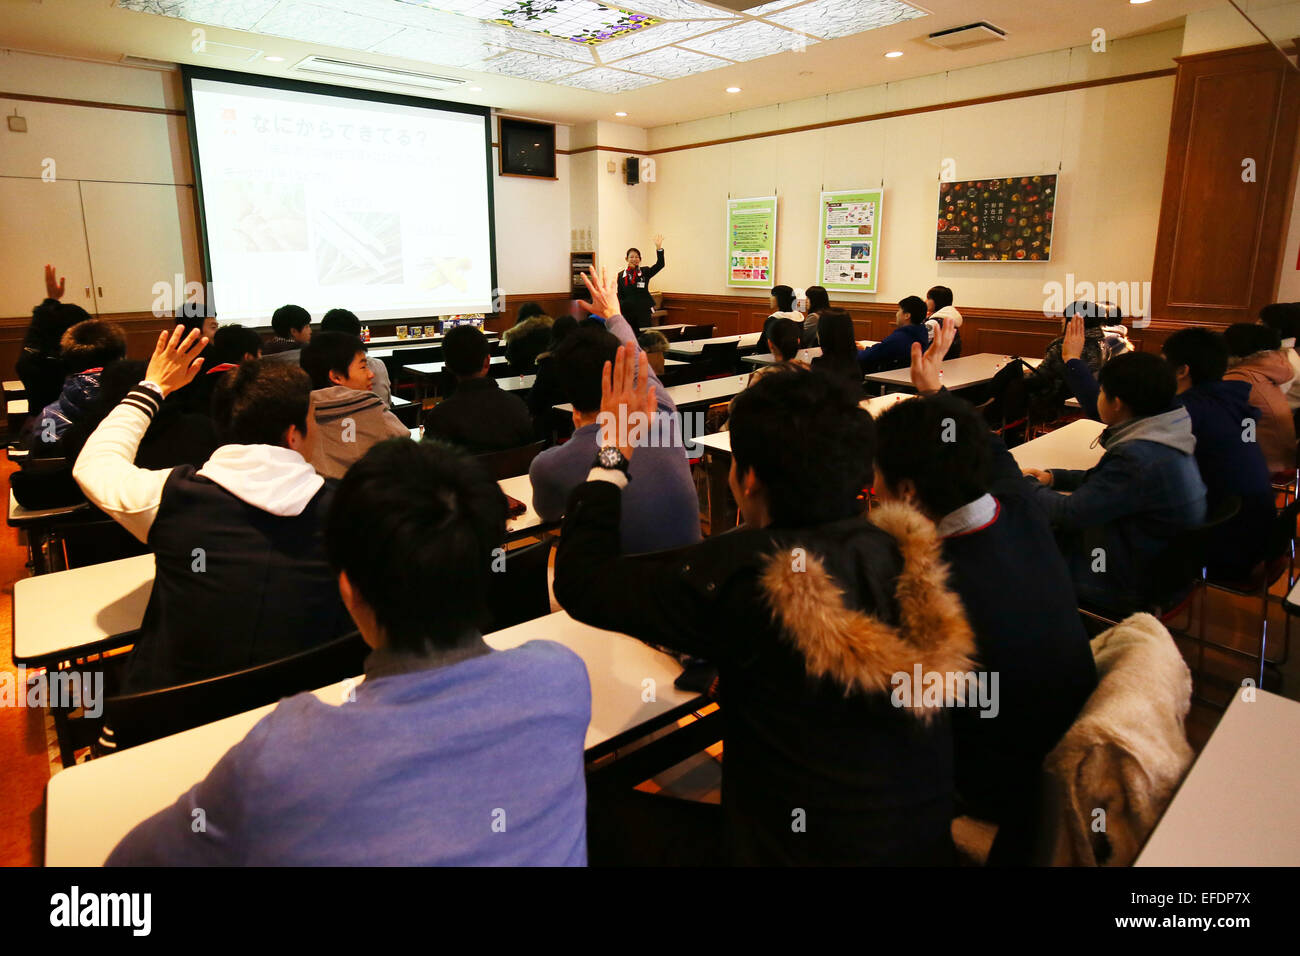 Joc Elite Academy Students Group February 1 2015 Students Of The Stock Photo 78364158 Alamy